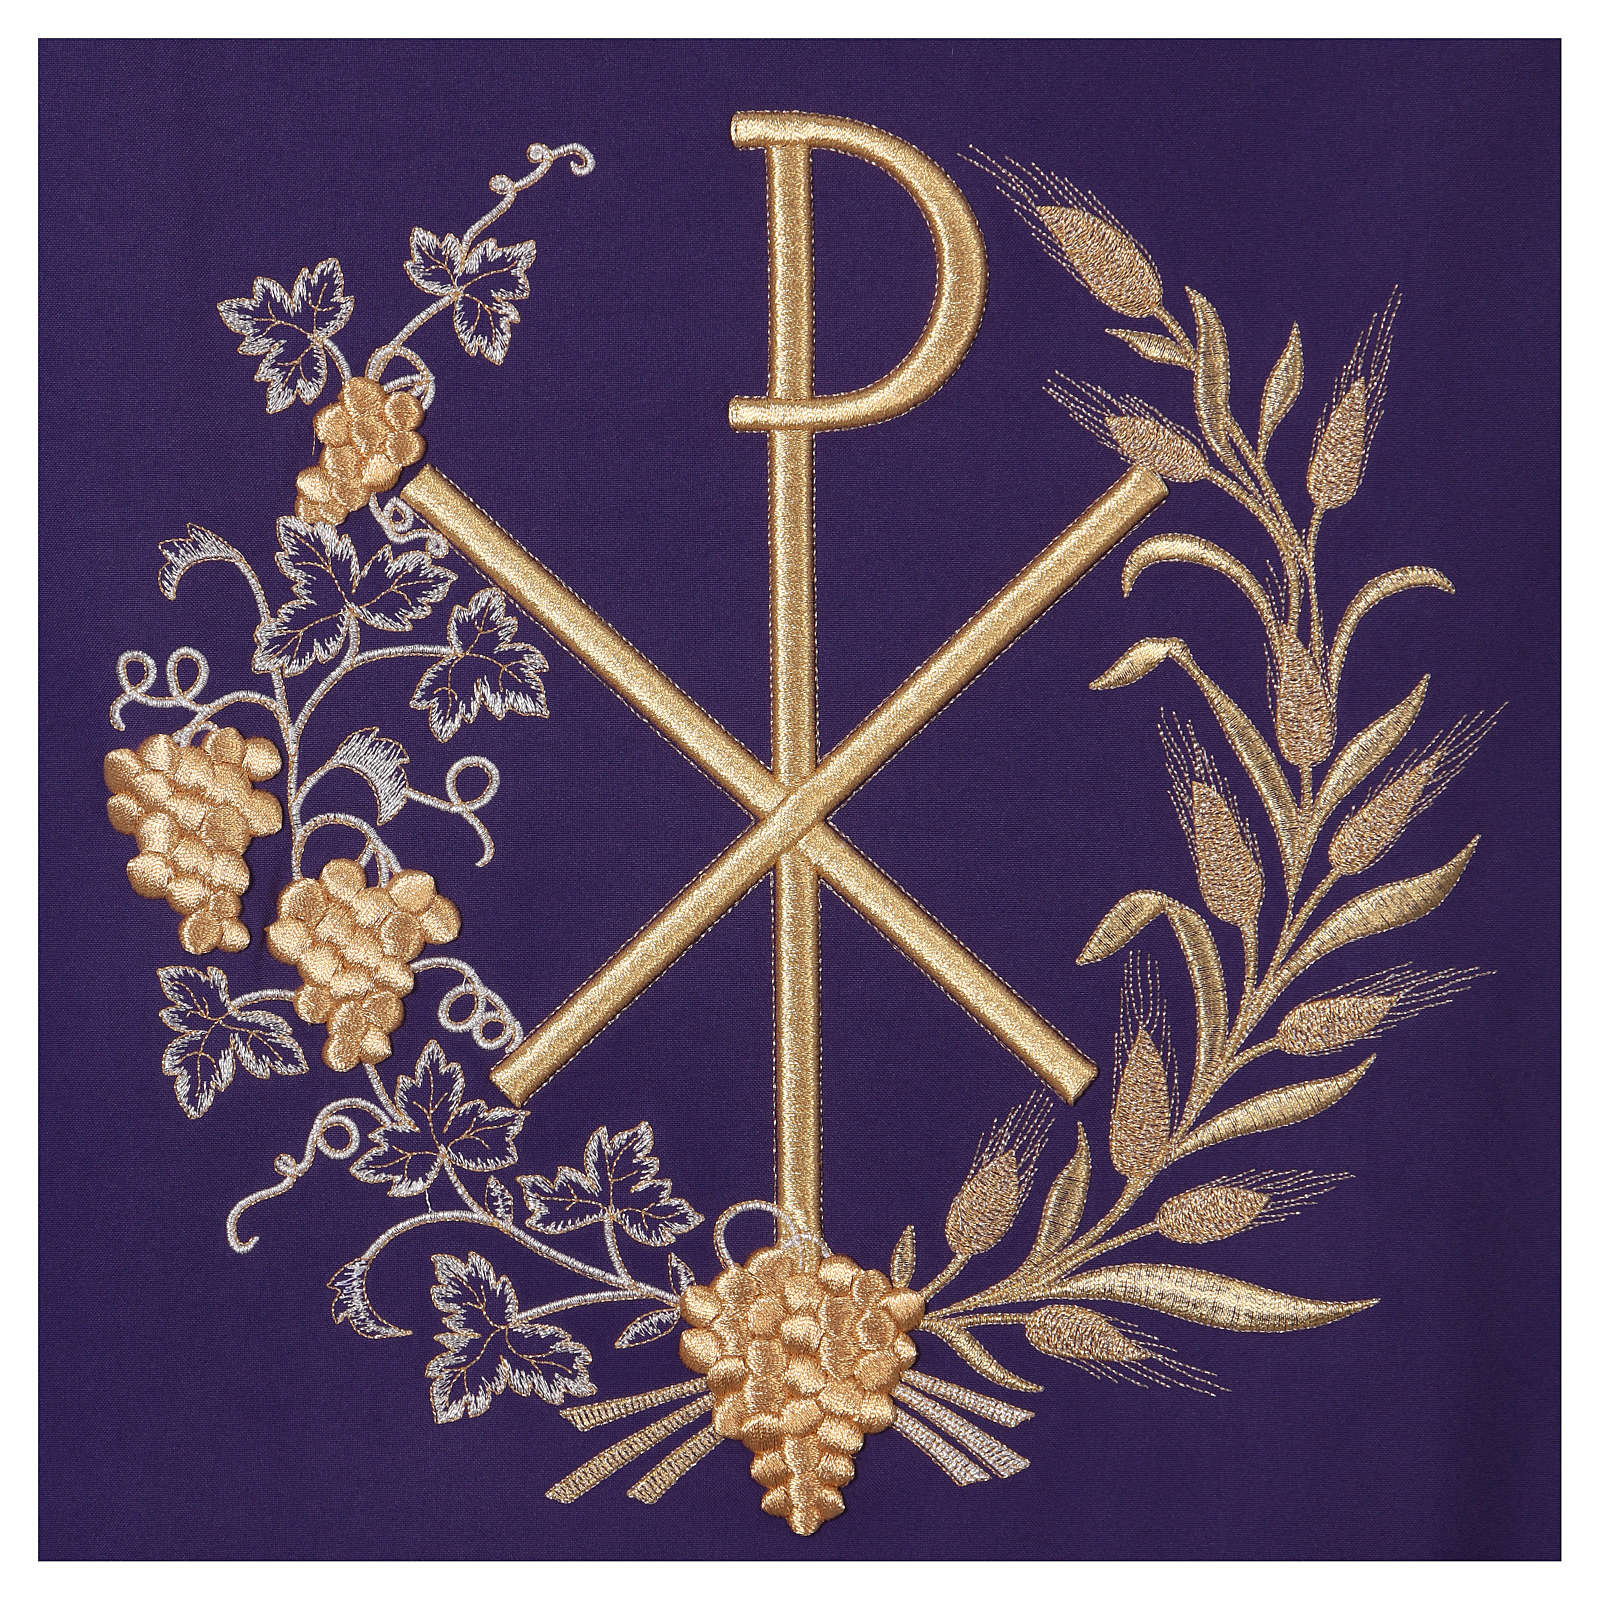 Lectern cover vine branch, grapes and PAX symbol 4